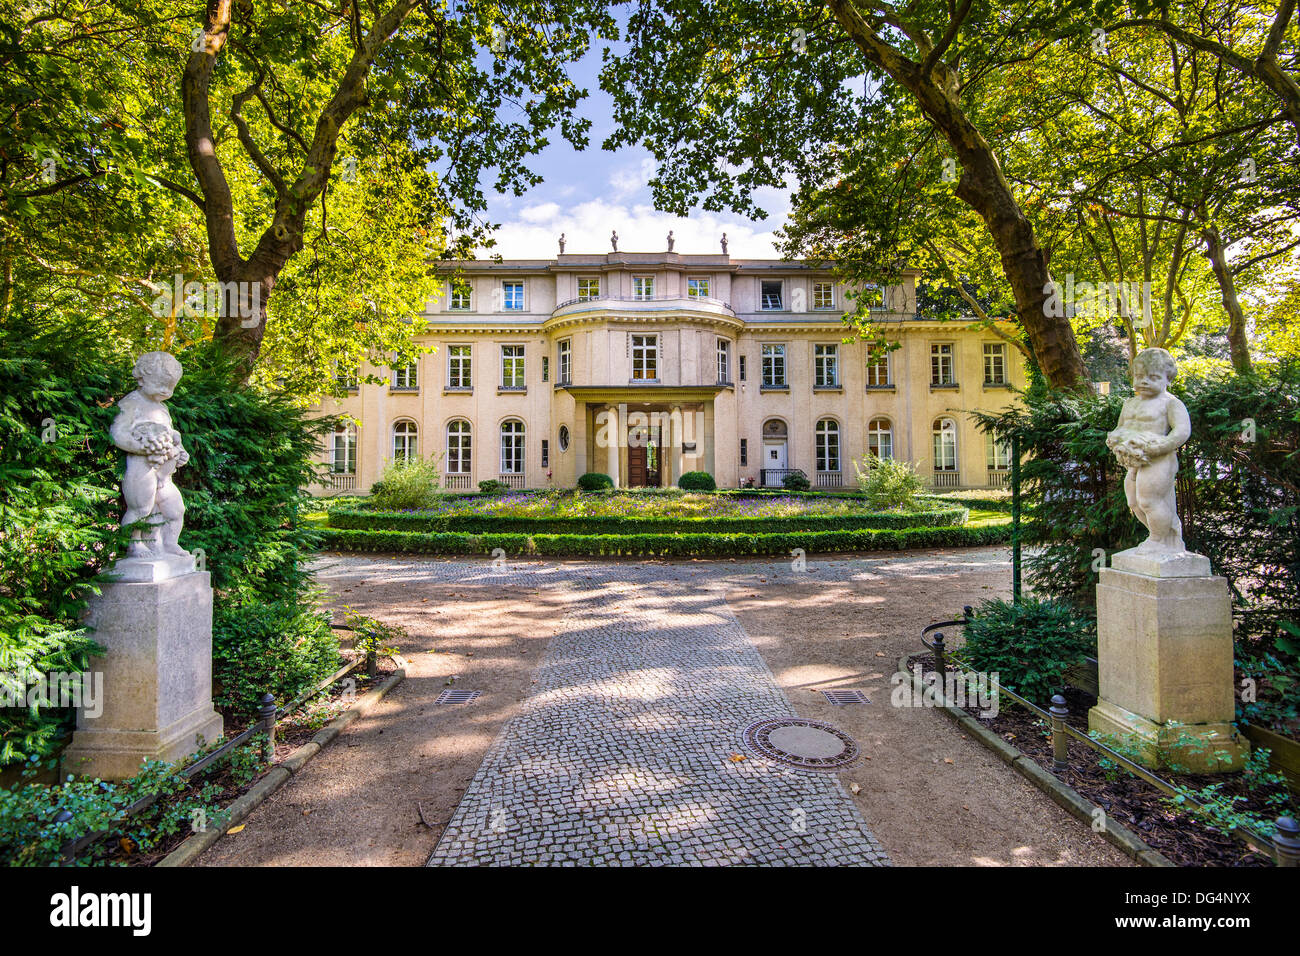 Wannsee House in Berlin, Germany. - Stock Image